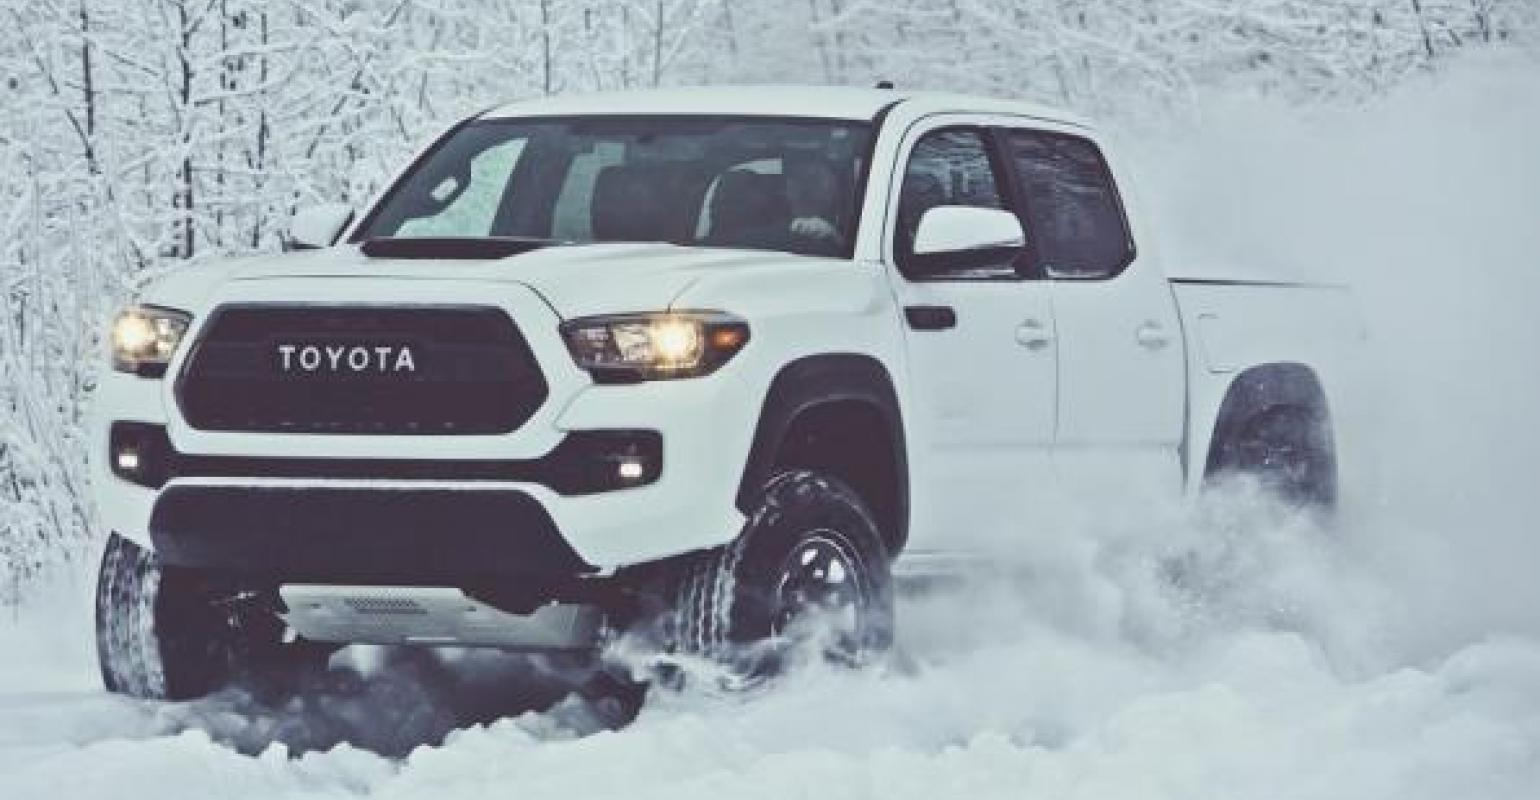 2018 Nada Trucks Are Cool But Nothing Wrong With Cars Toyota